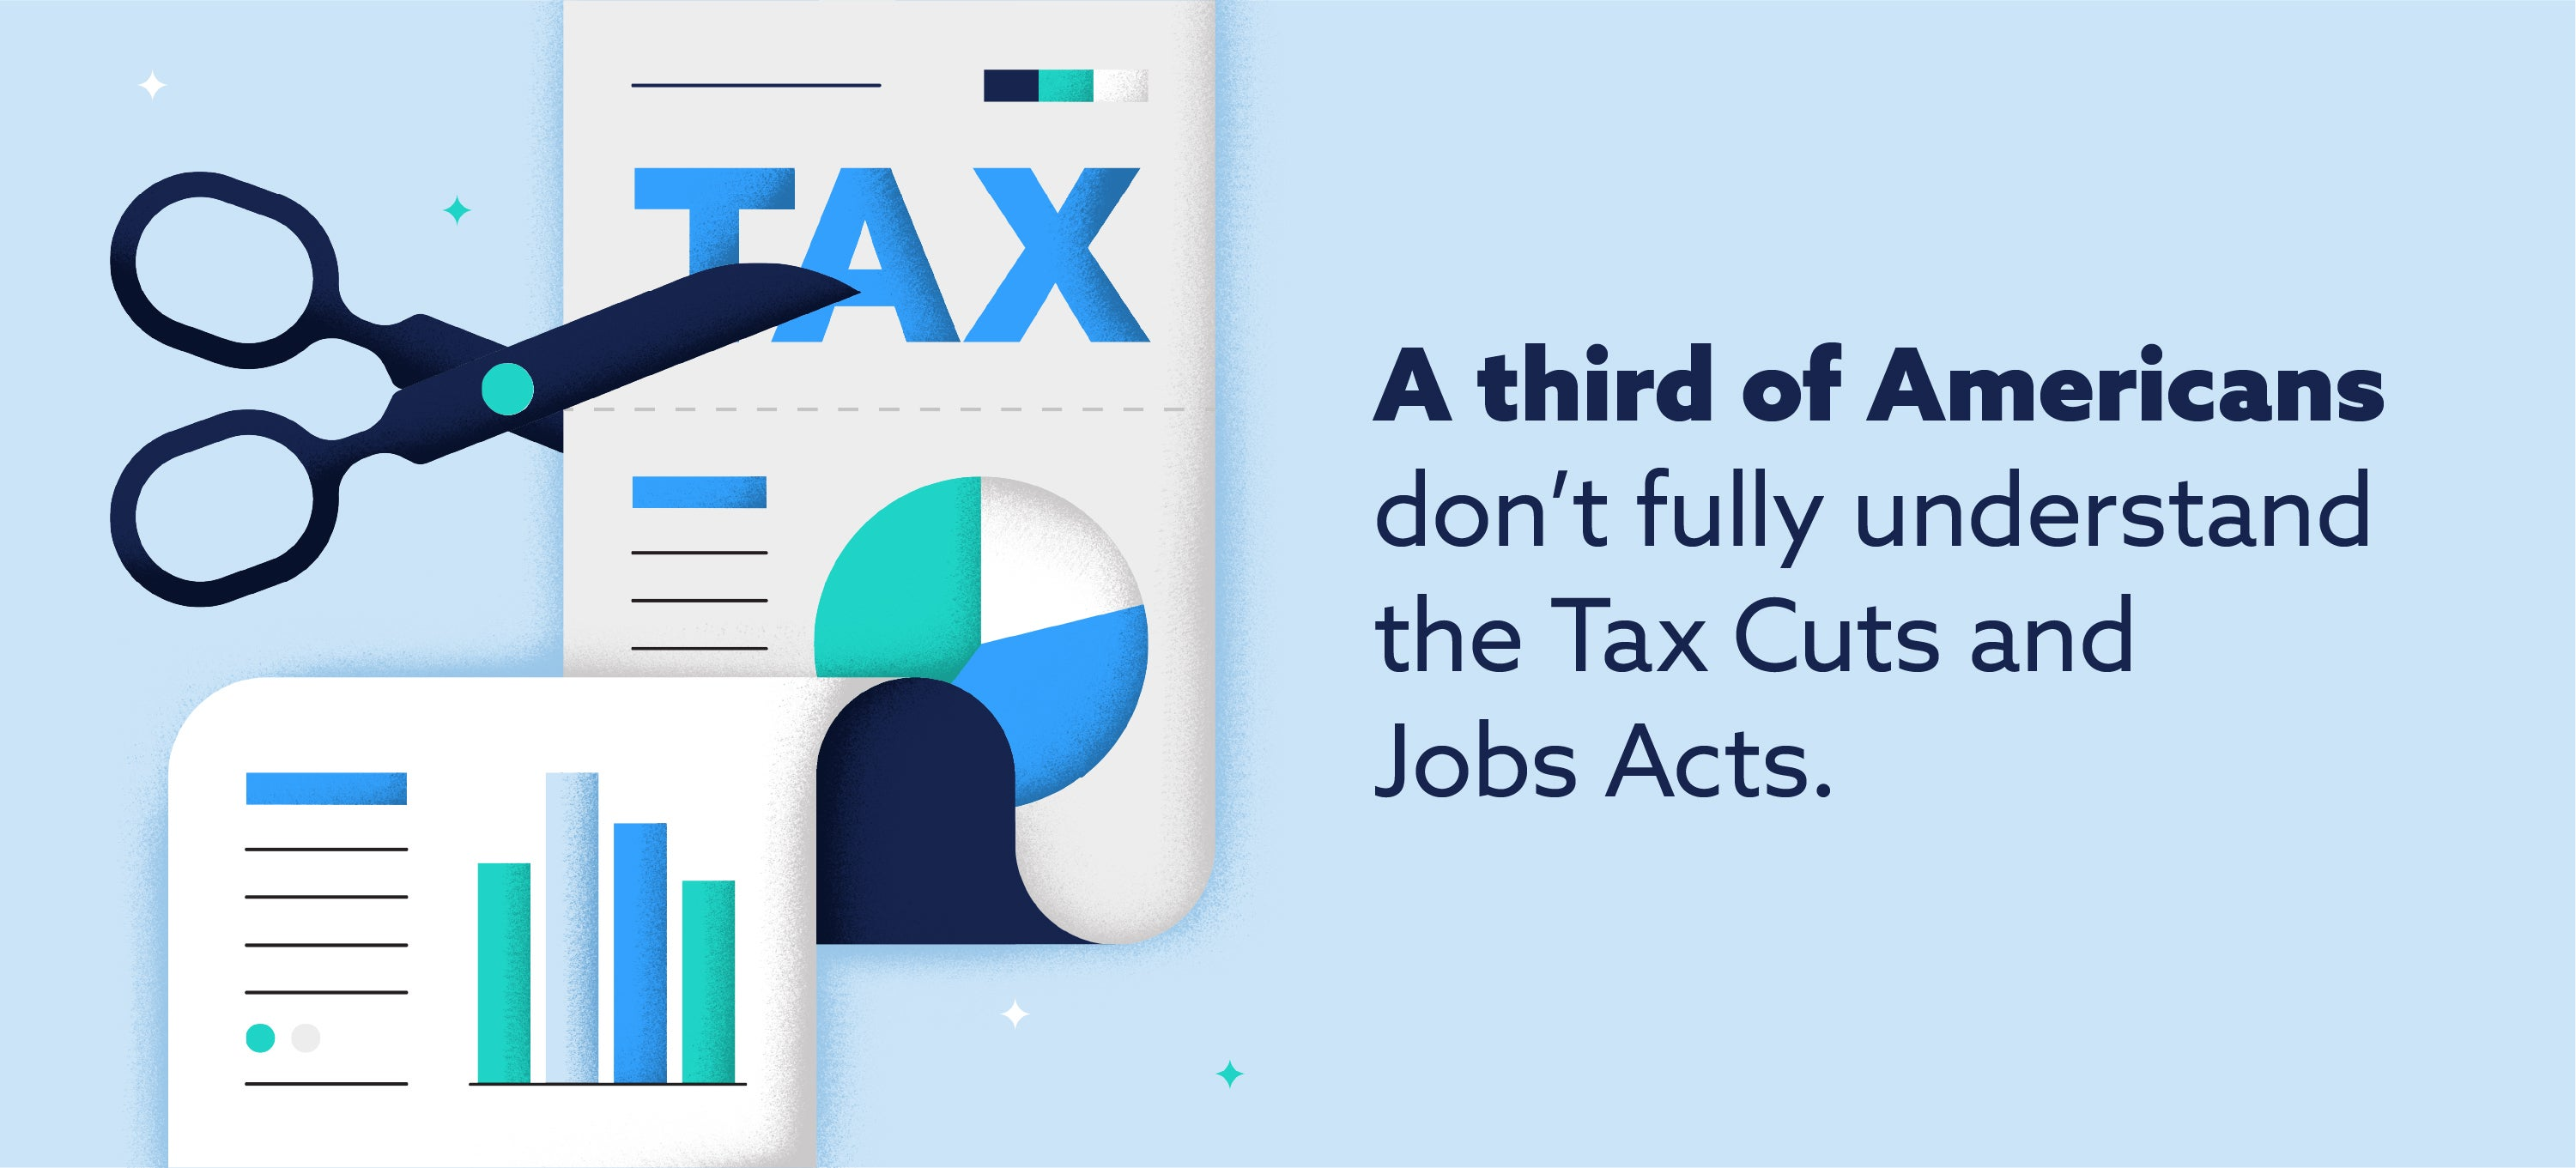 a third of americans don't fully understand the tax cuts and jobs acts